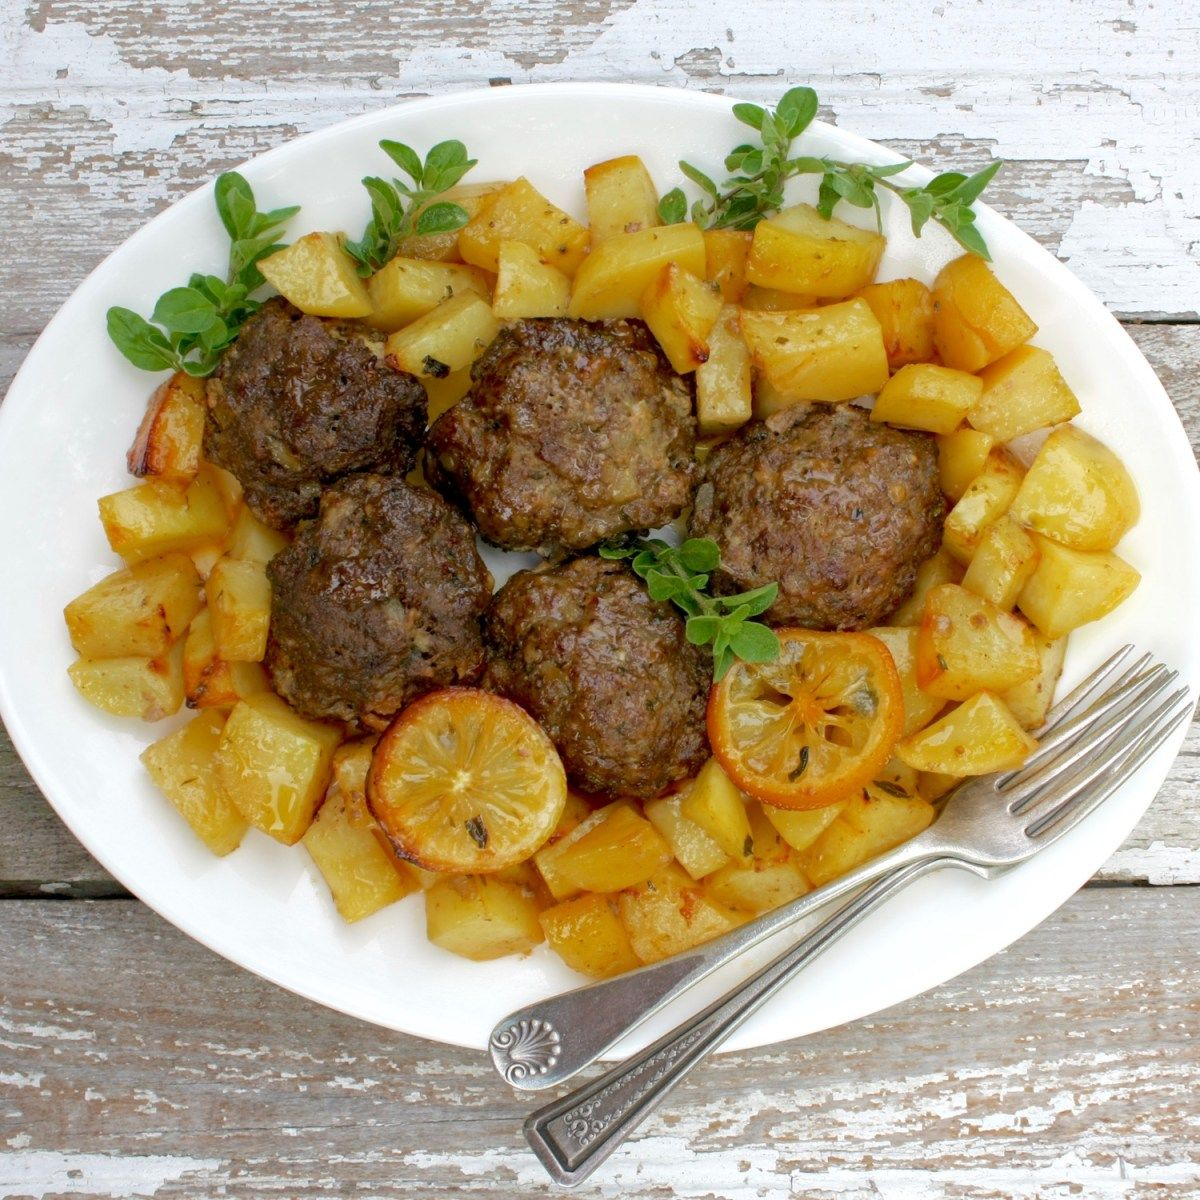 ... Meatballs with Lemon and Herbs | Recipe | Traditional, Greek meatballs